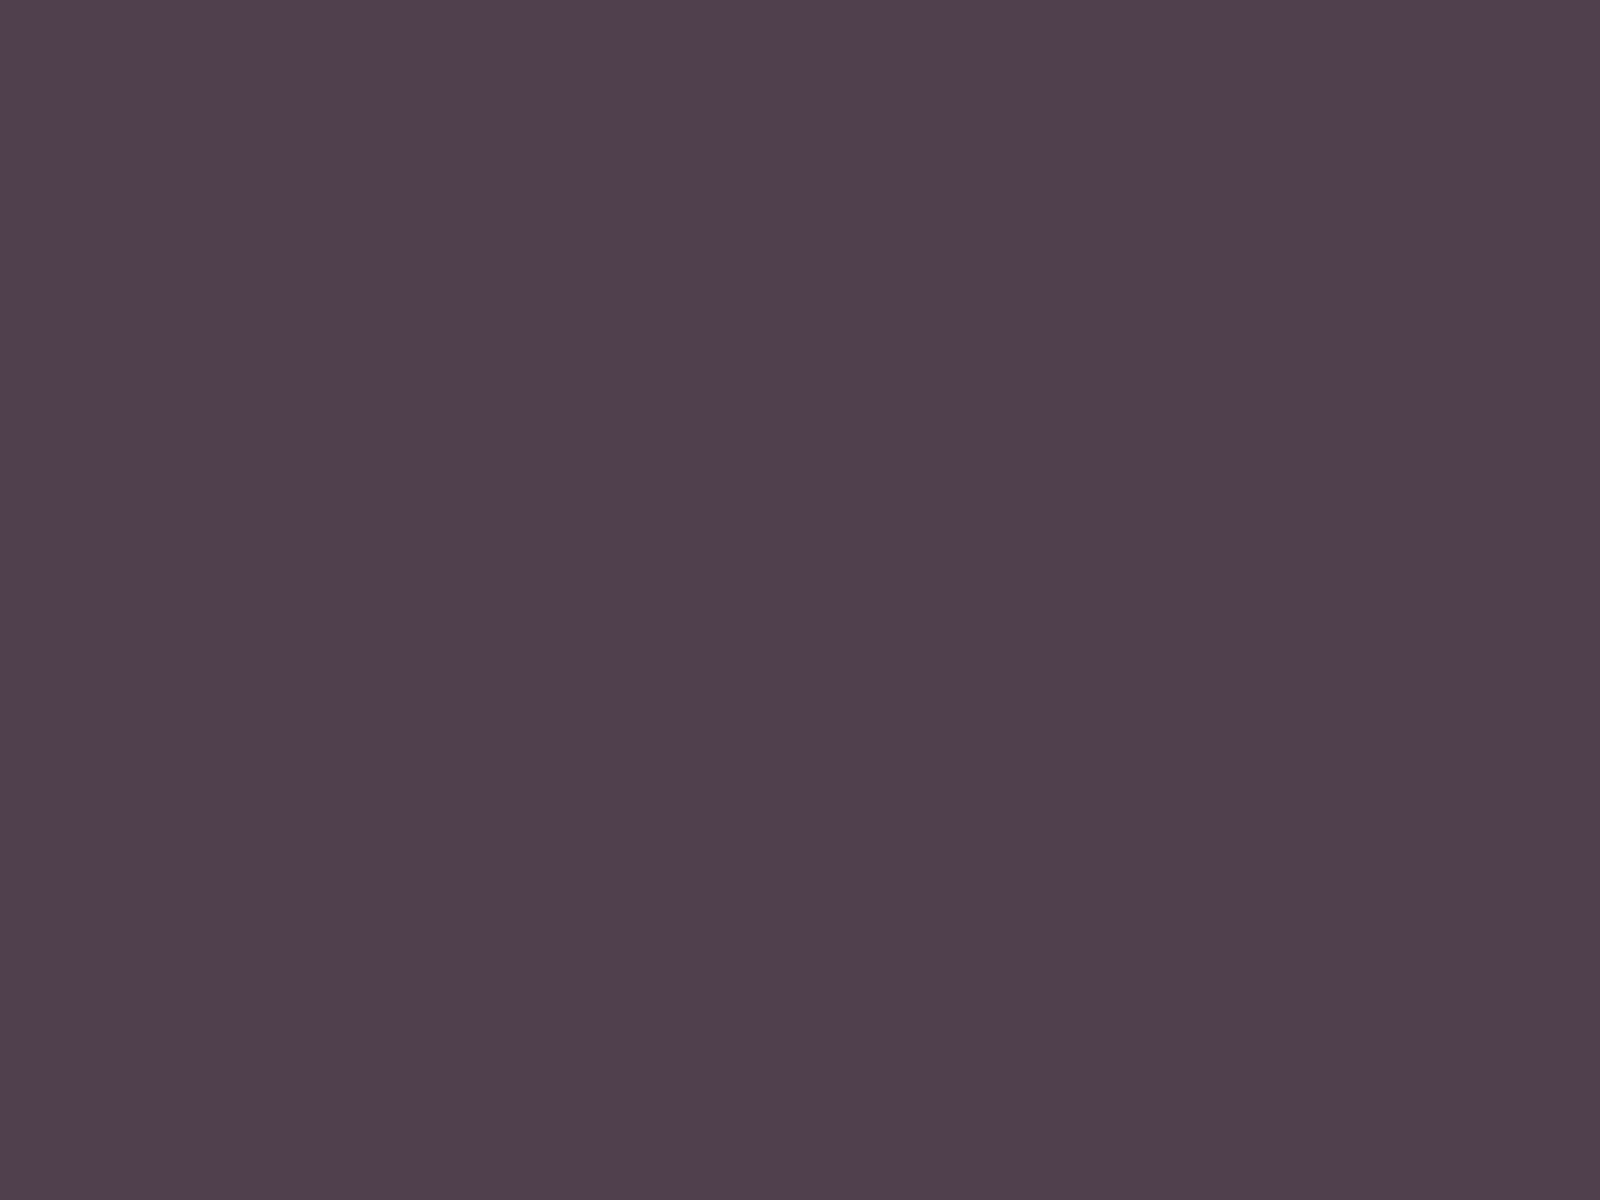 1600x1200 Purple Taupe Solid Color Background